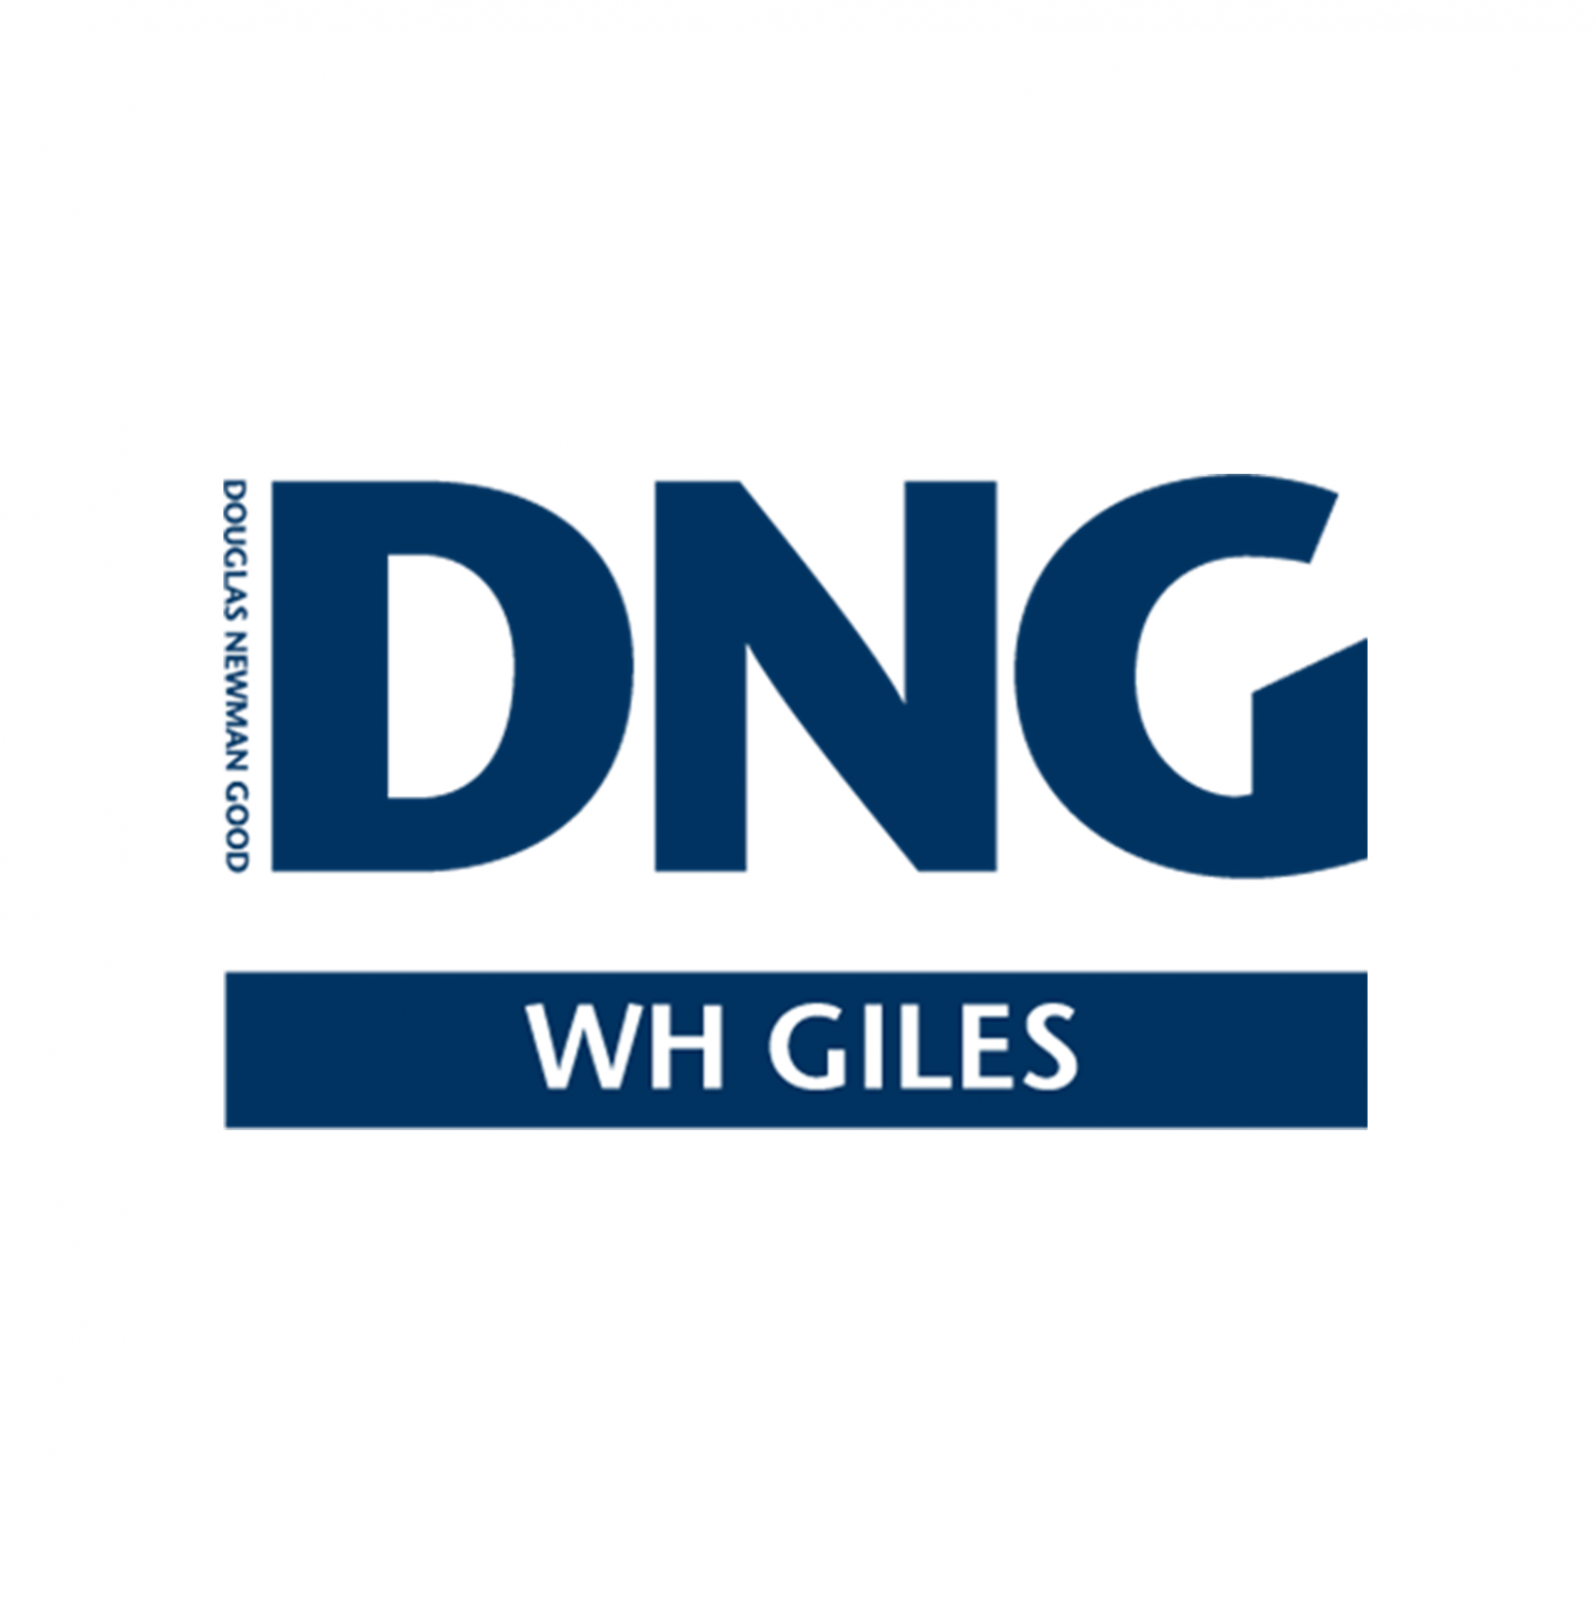 DNG WH Giles 1